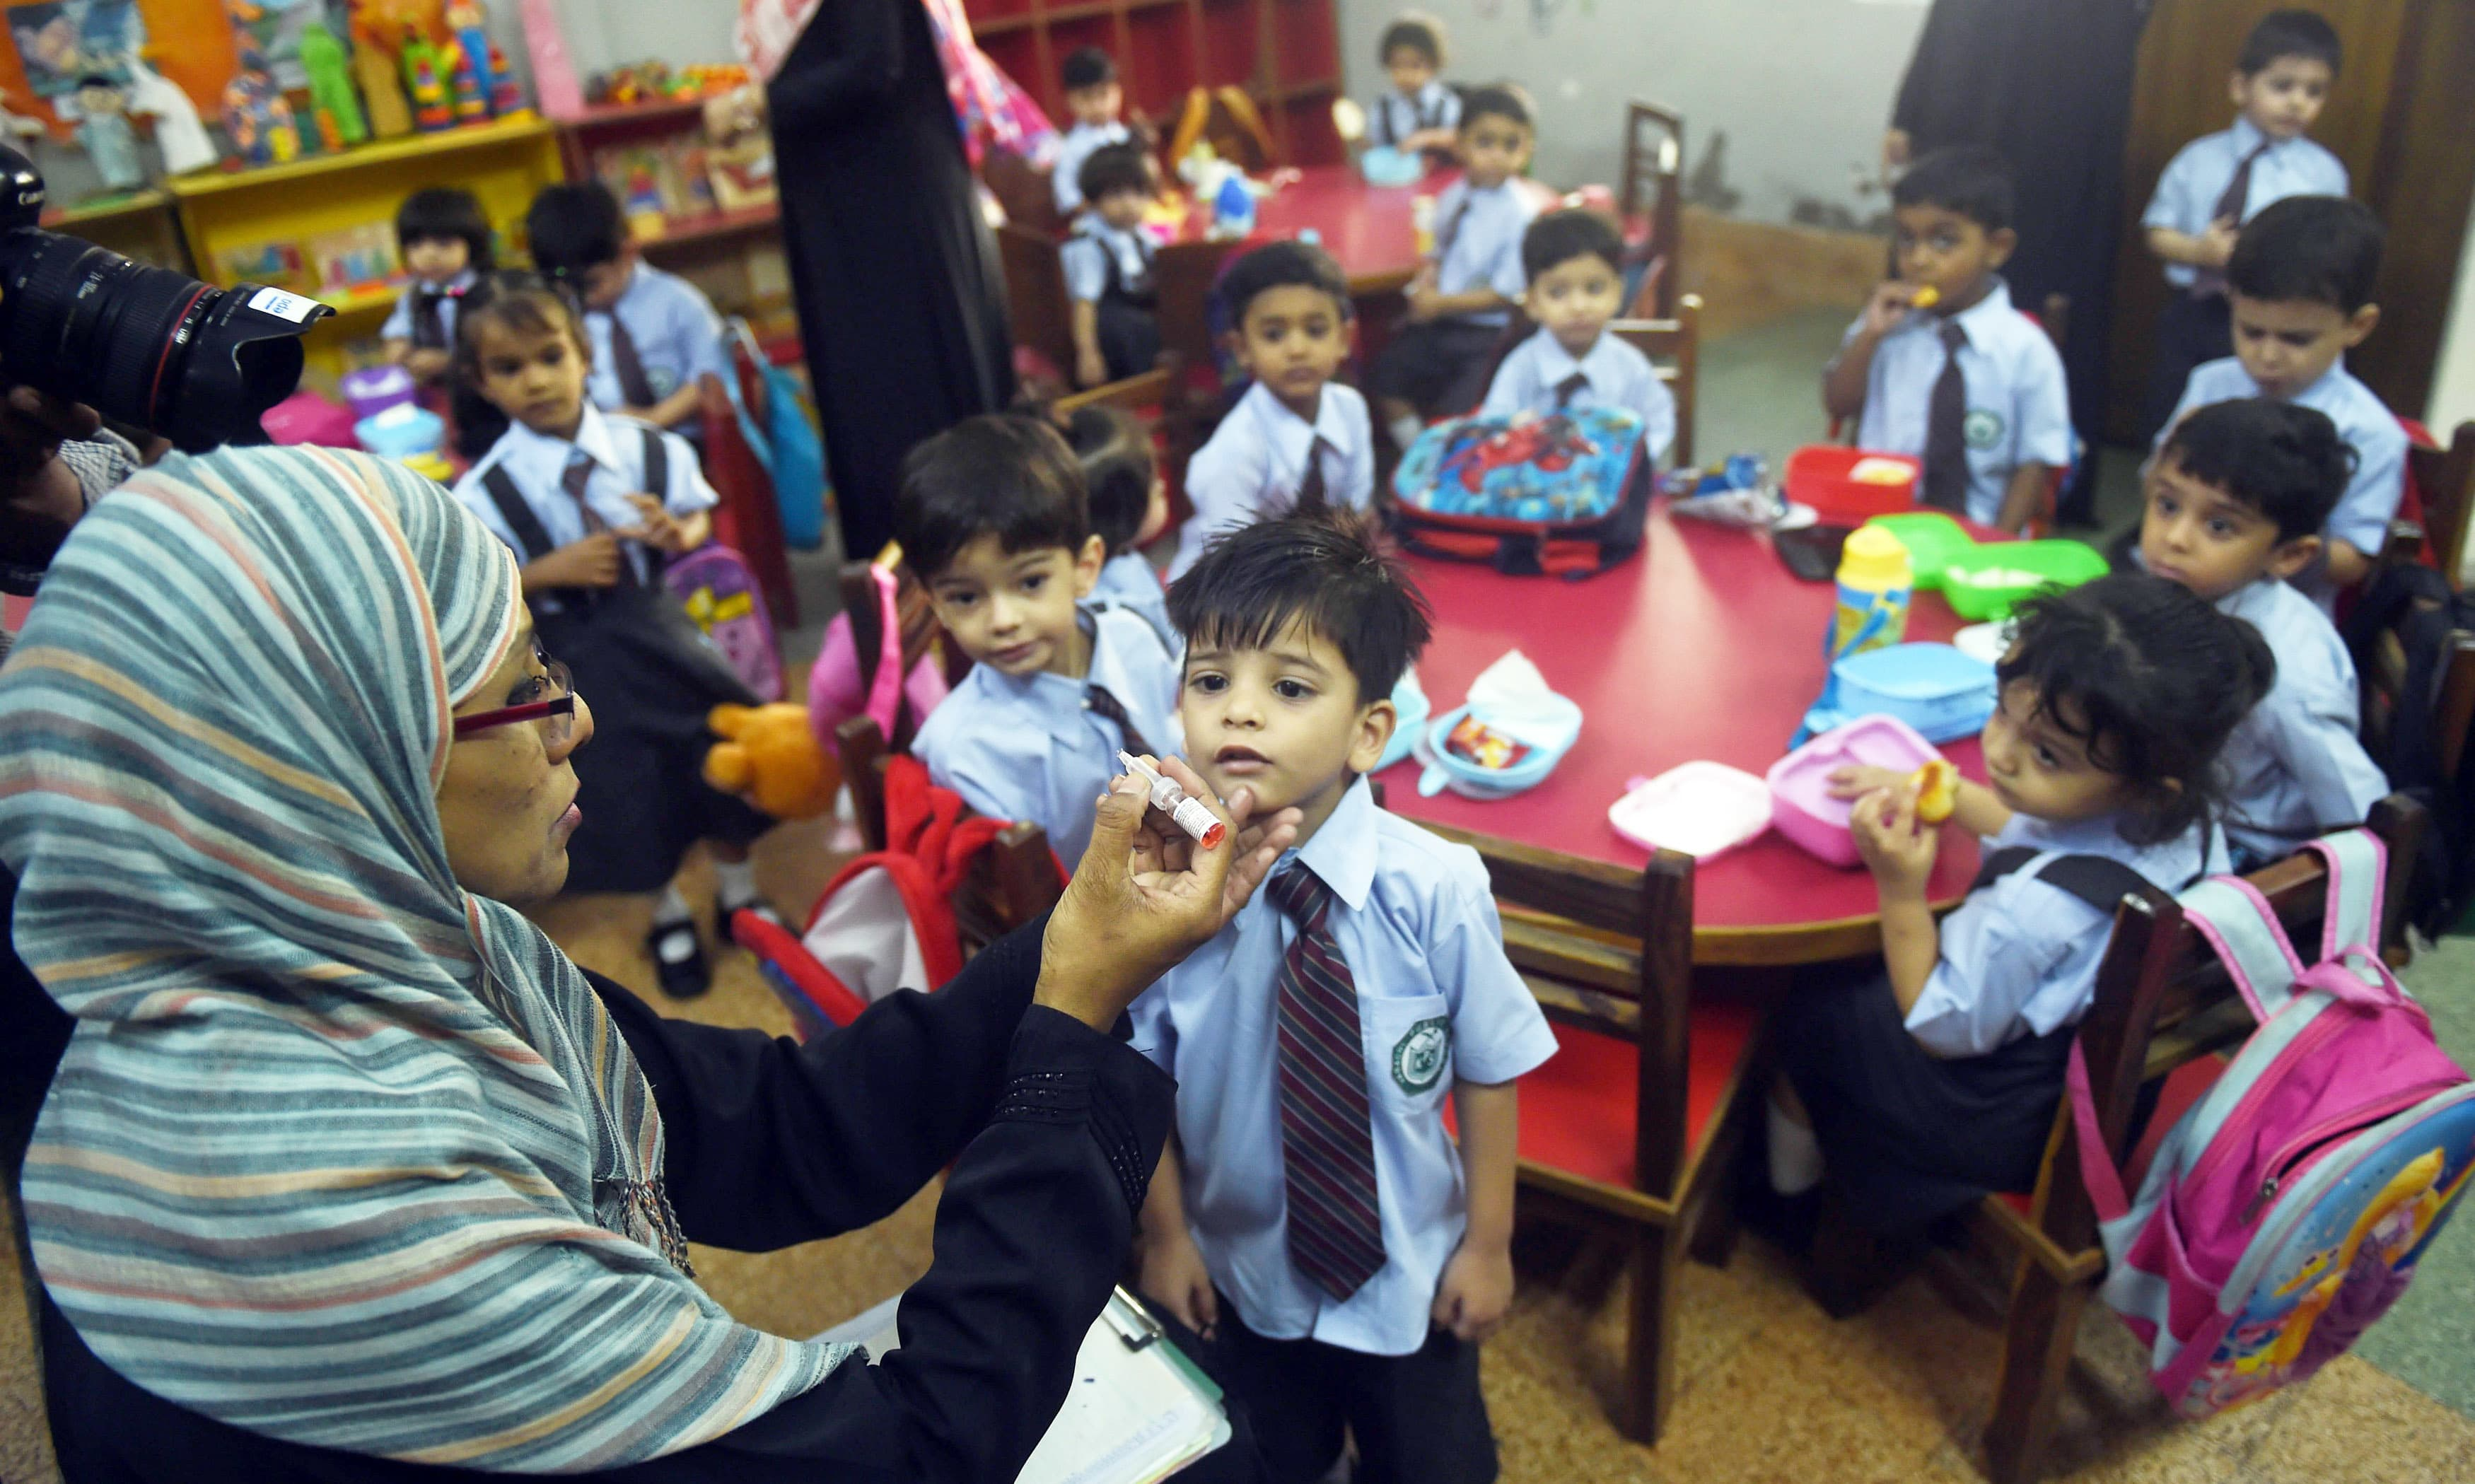 A health worker administers polio vaccine drops to a child at a school during a polio vaccination campaign in Karachi. —AFP